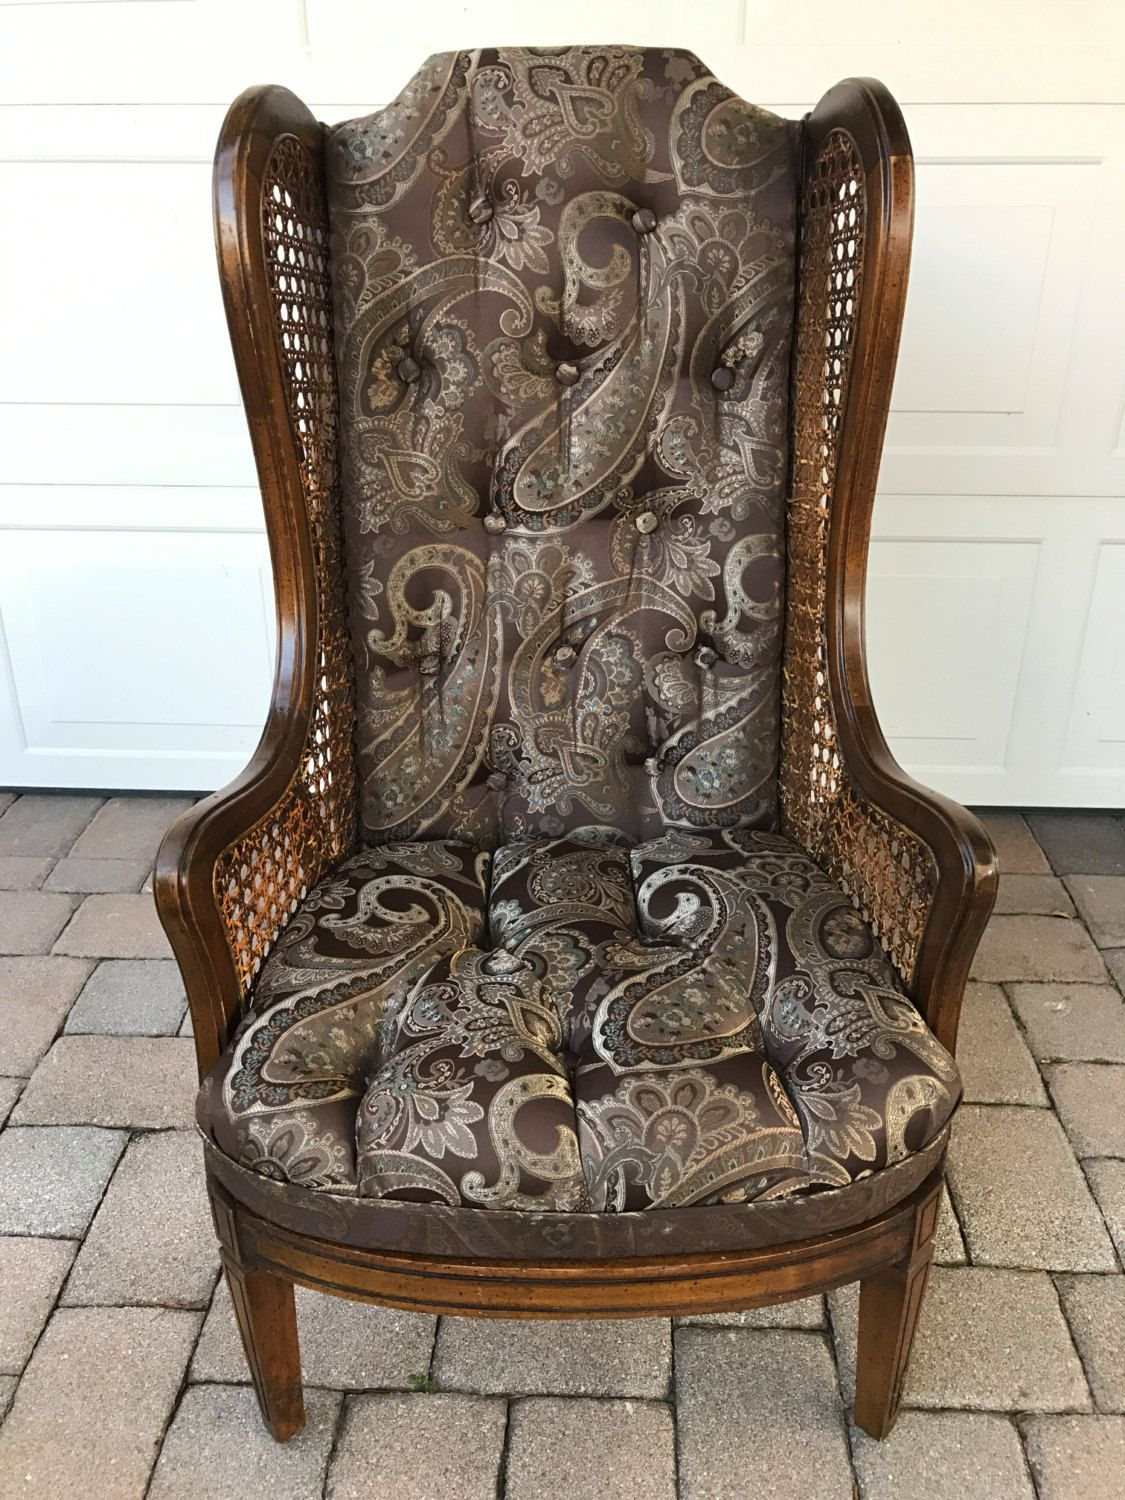 Vintage Tall Wingback Cane Chair/ Lewittes Style Chair by